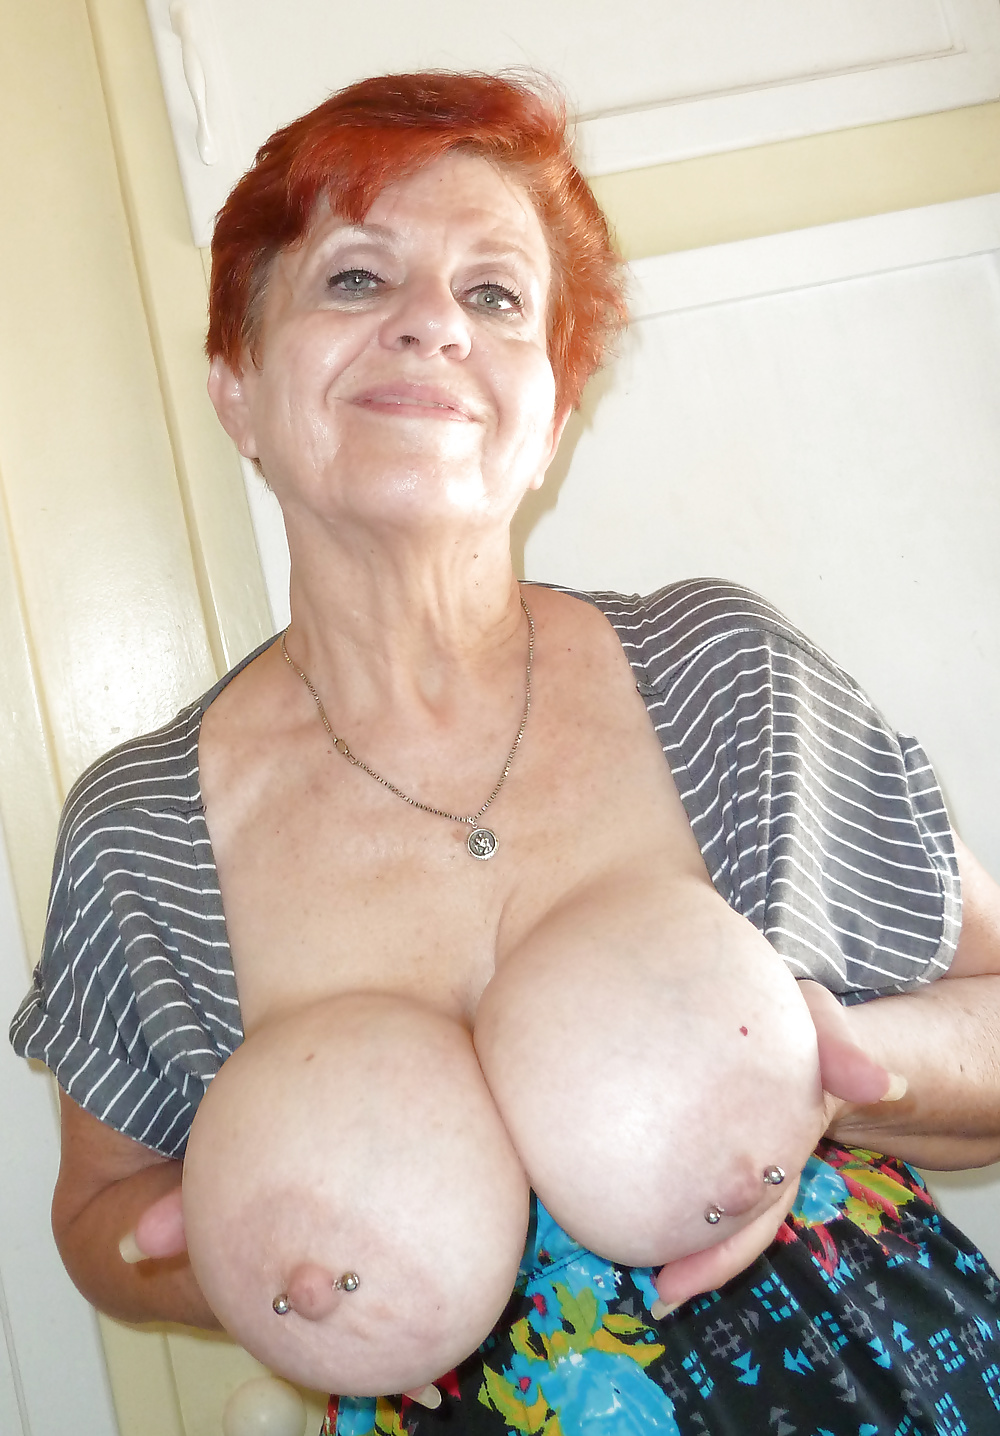 Biggest granny tits, african american couples pictures